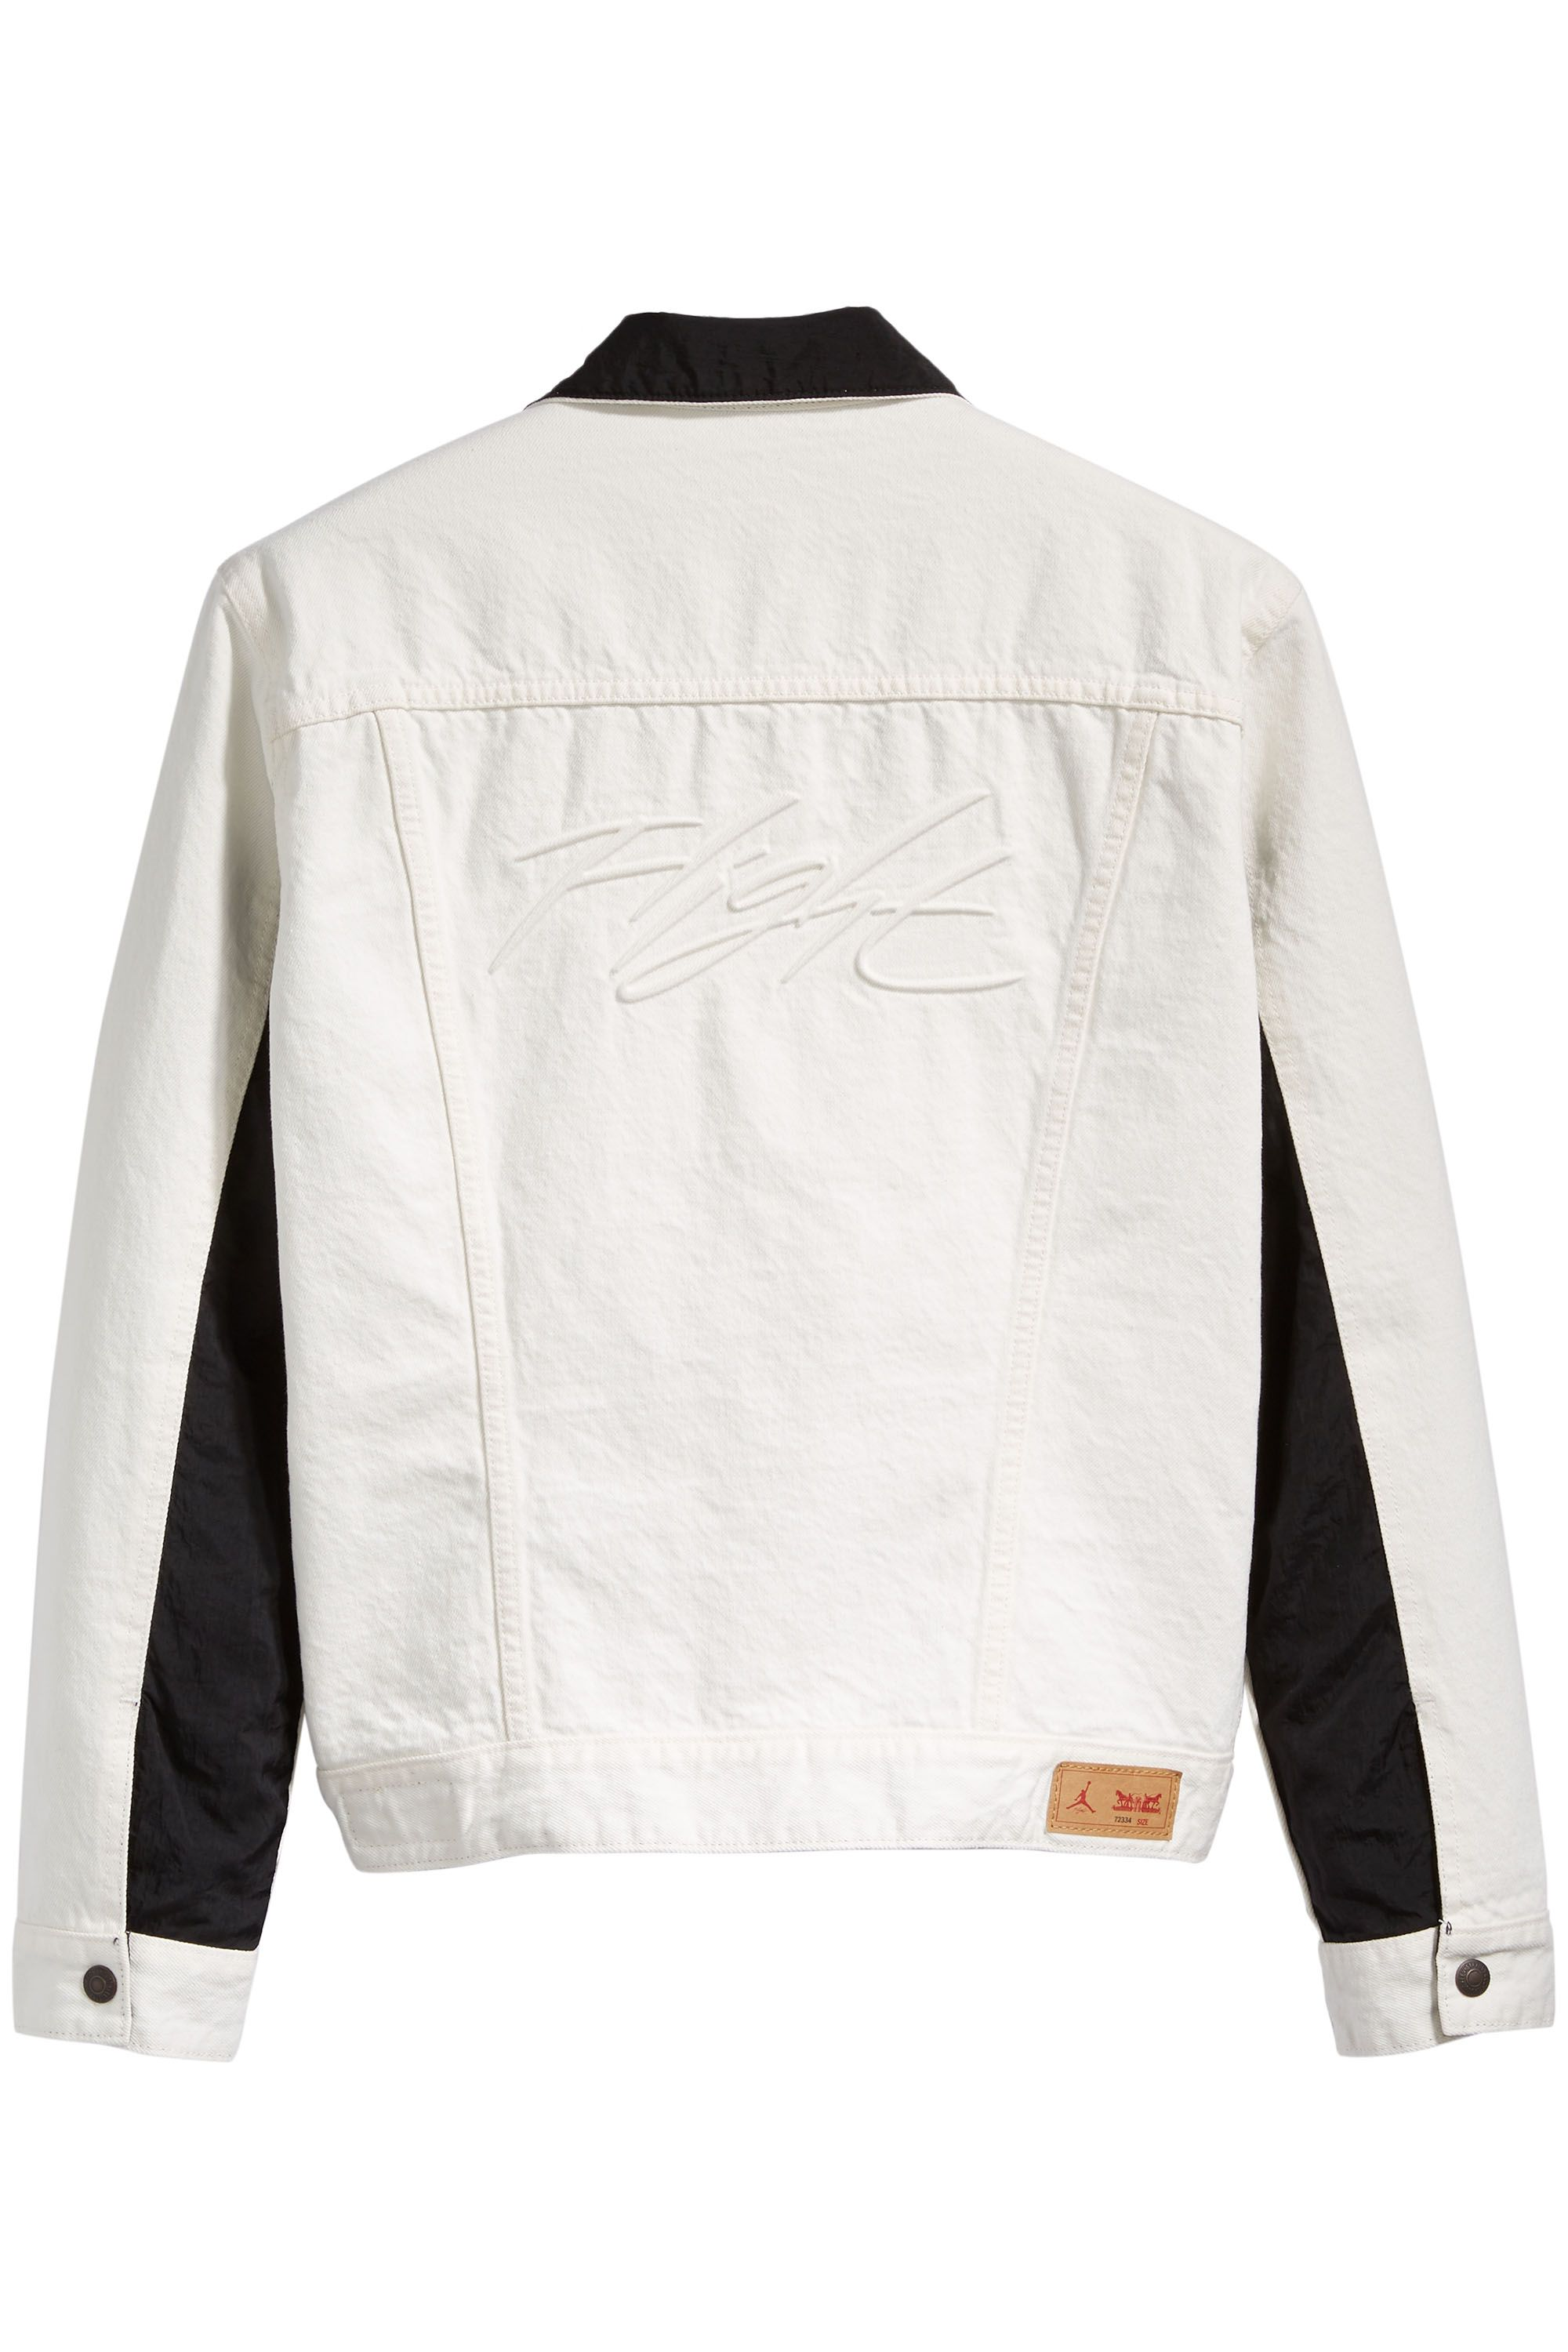 7d926aa9ab4fe3 Levi s and Jordan Brand Prove You Need a Summer Jacket